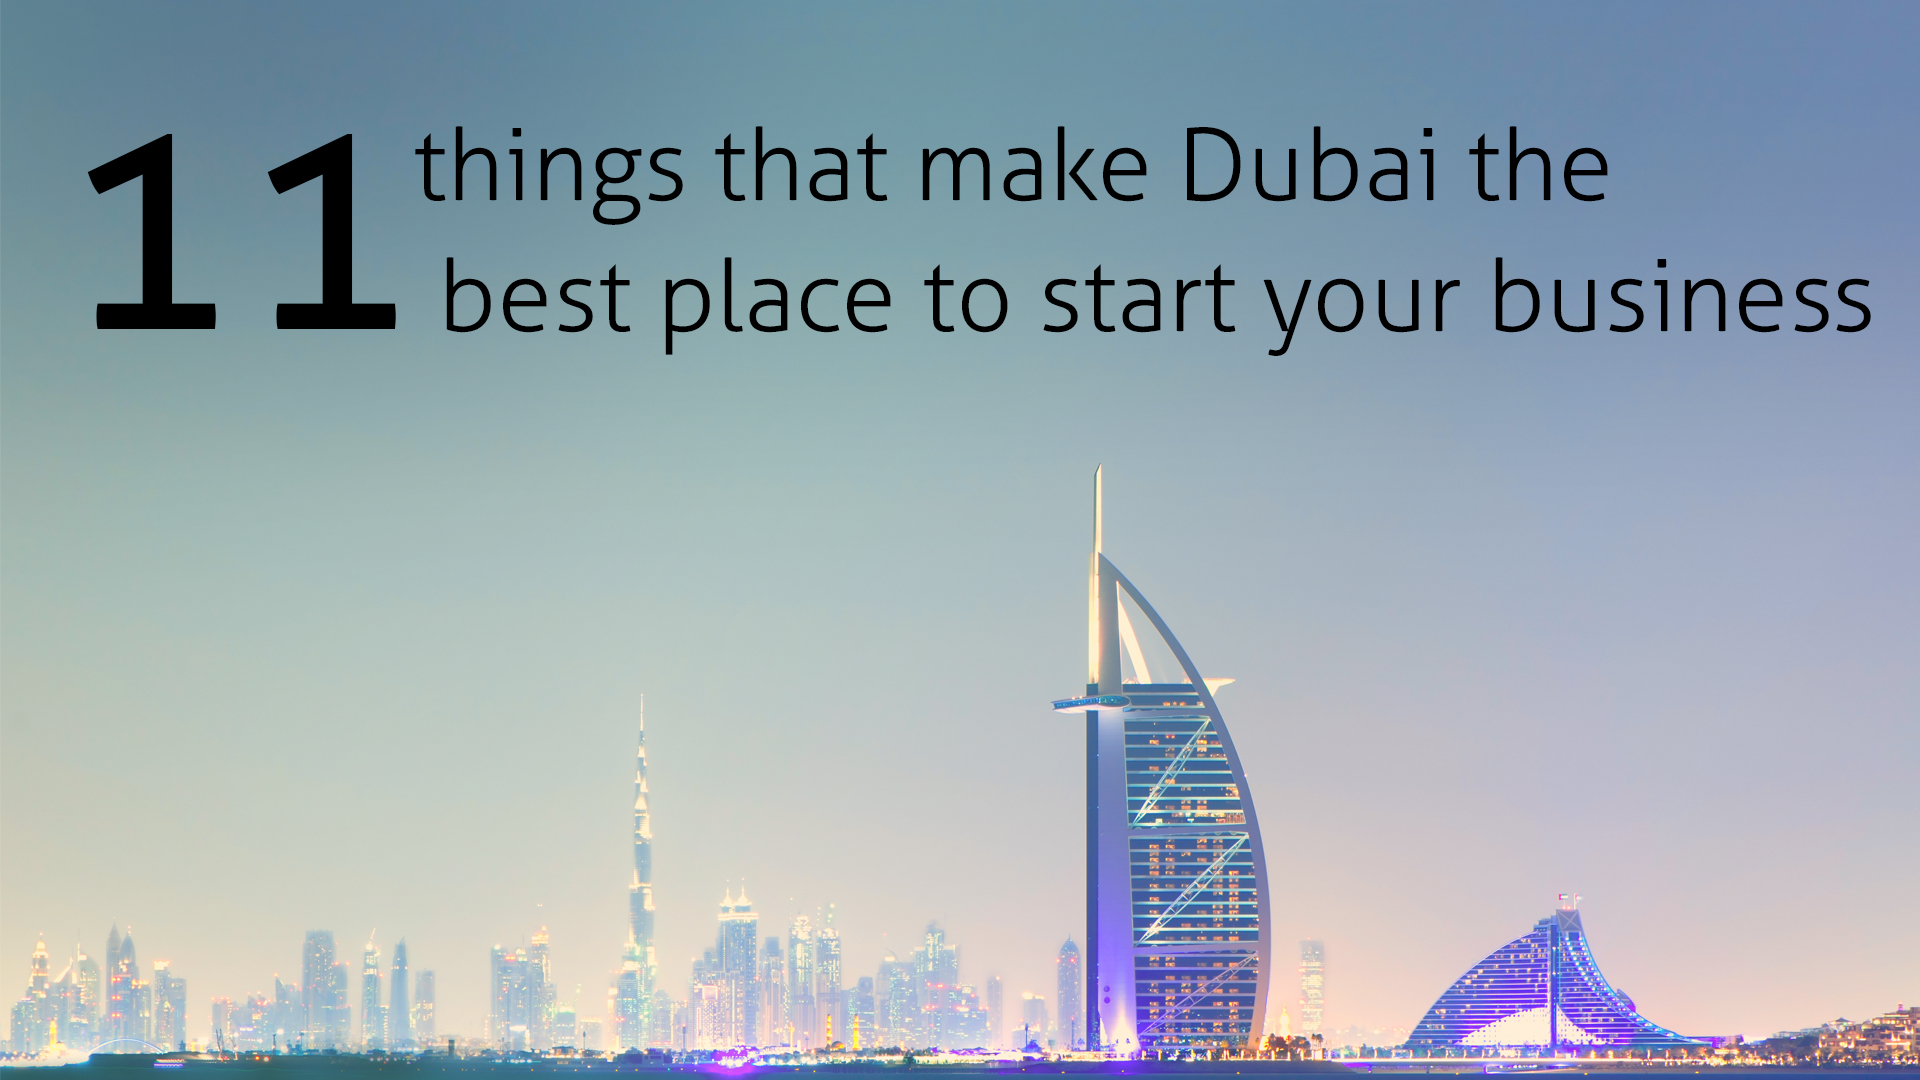 11 things that make Dubai the best place to start your business